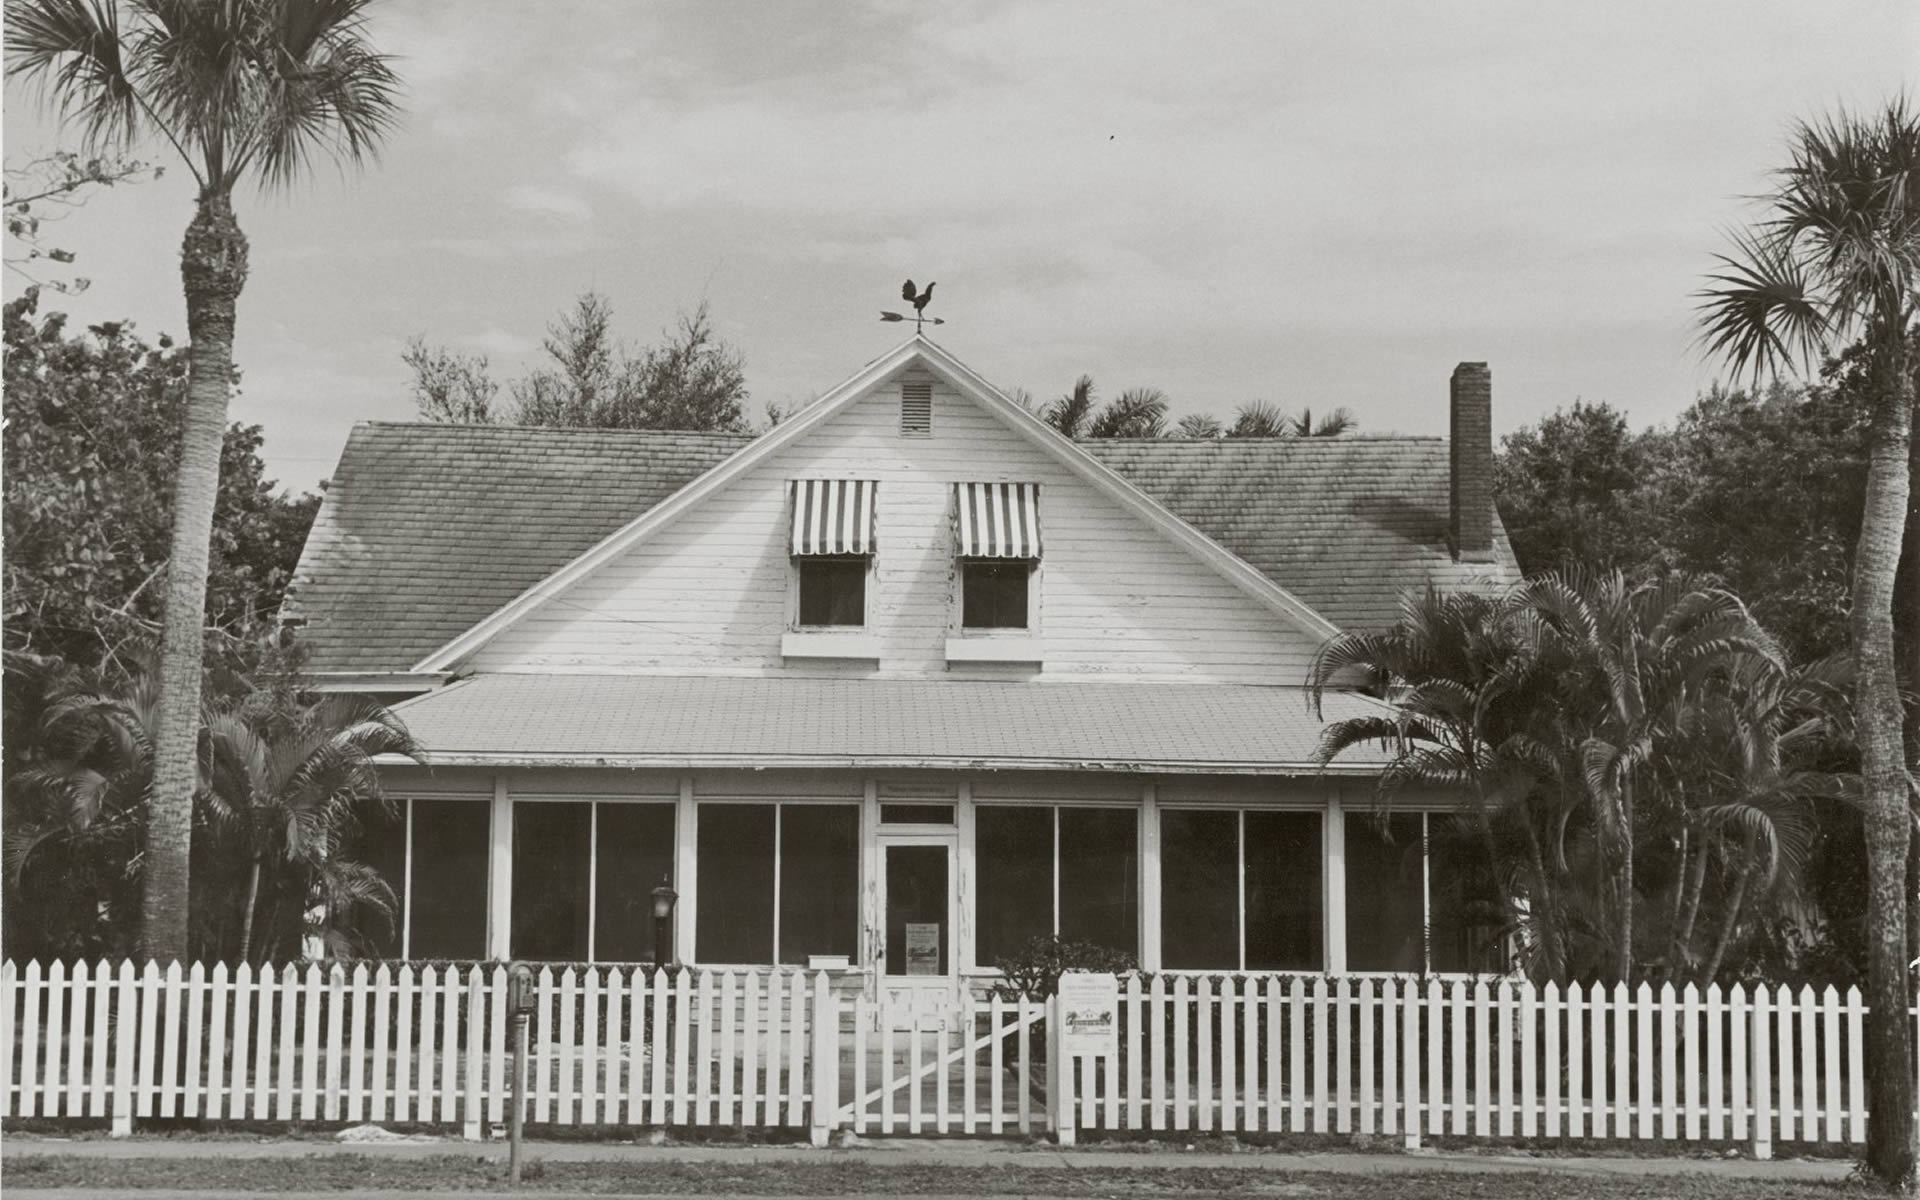 The Haldeman House which belonged to one of the original founders of Naples. It is now a house museum with gardens showing the landscaping history and horticulture of the area.